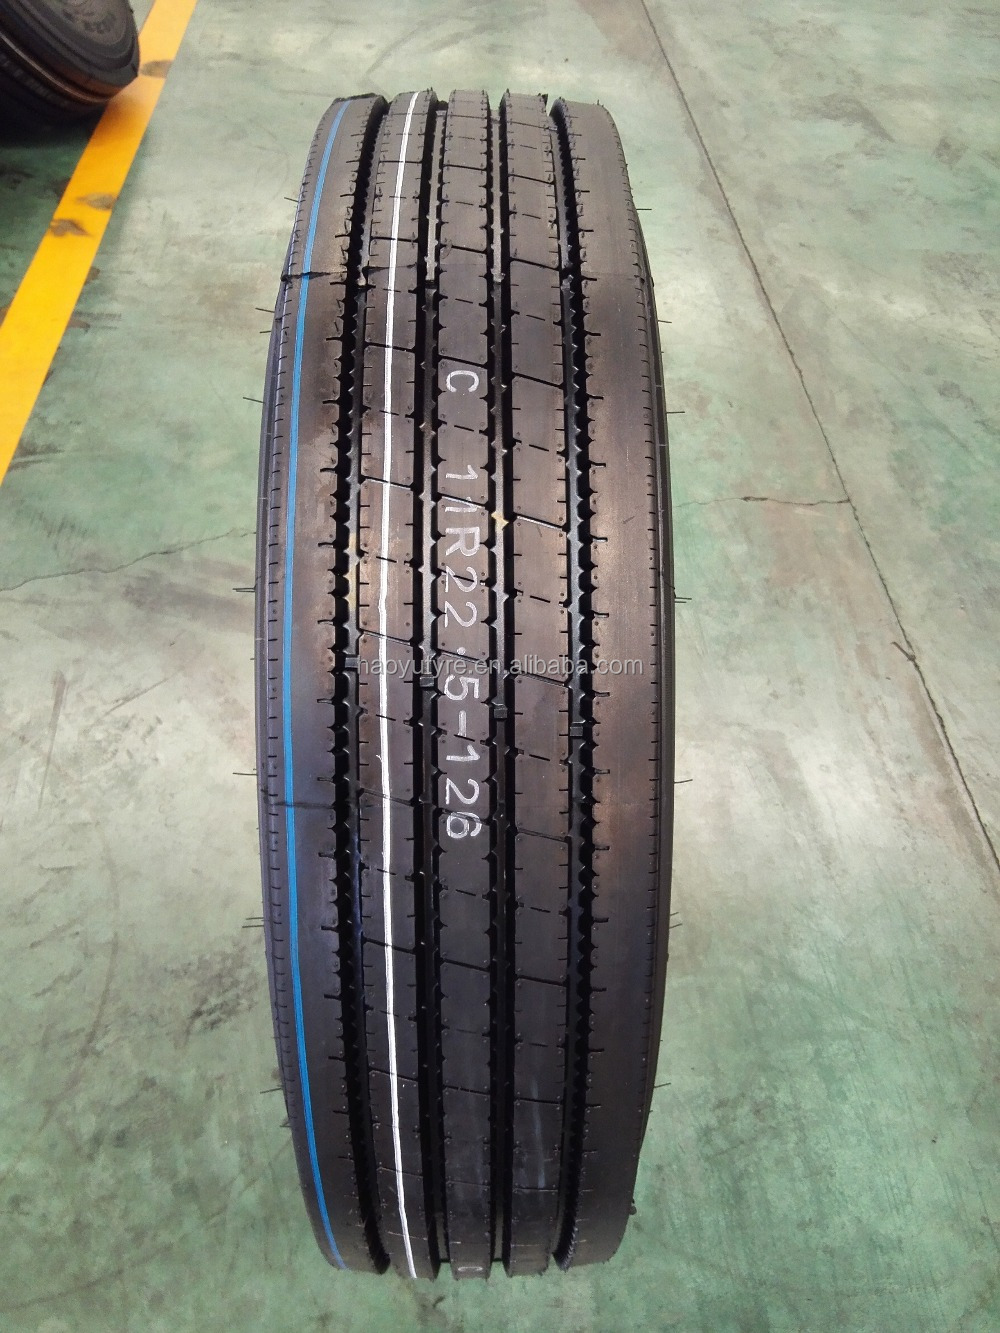 Radial truck tires 11R22.5, 11R24.5, 295/80R22.5 trailer/tractor/steer/drive, DOT/Quality Liablity insurance